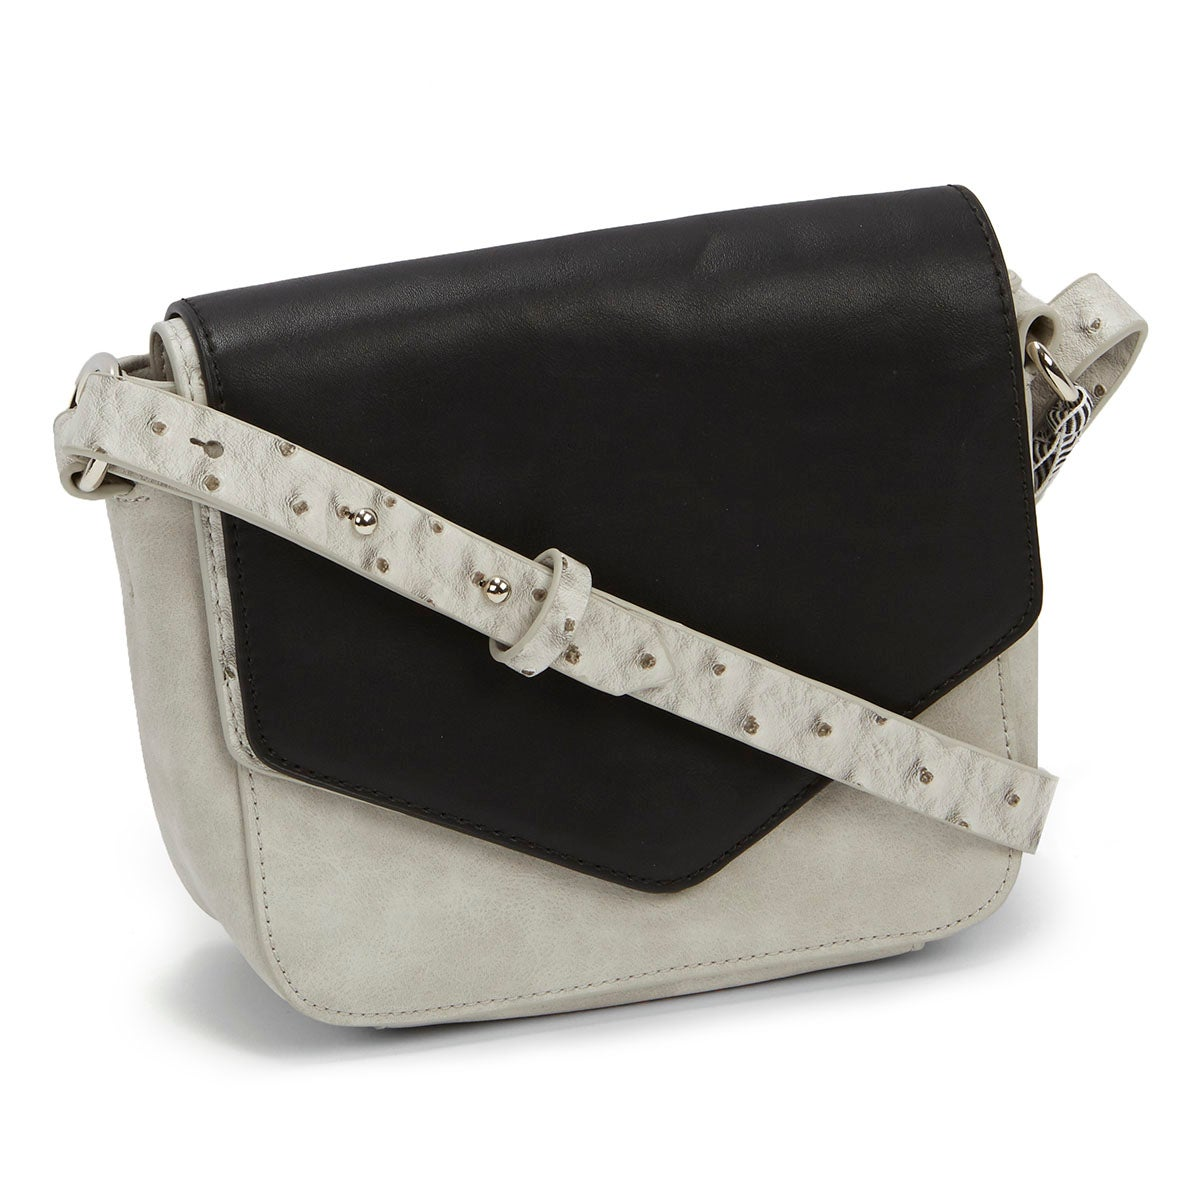 Lds Cosmopolitan gry/blk cross body bag